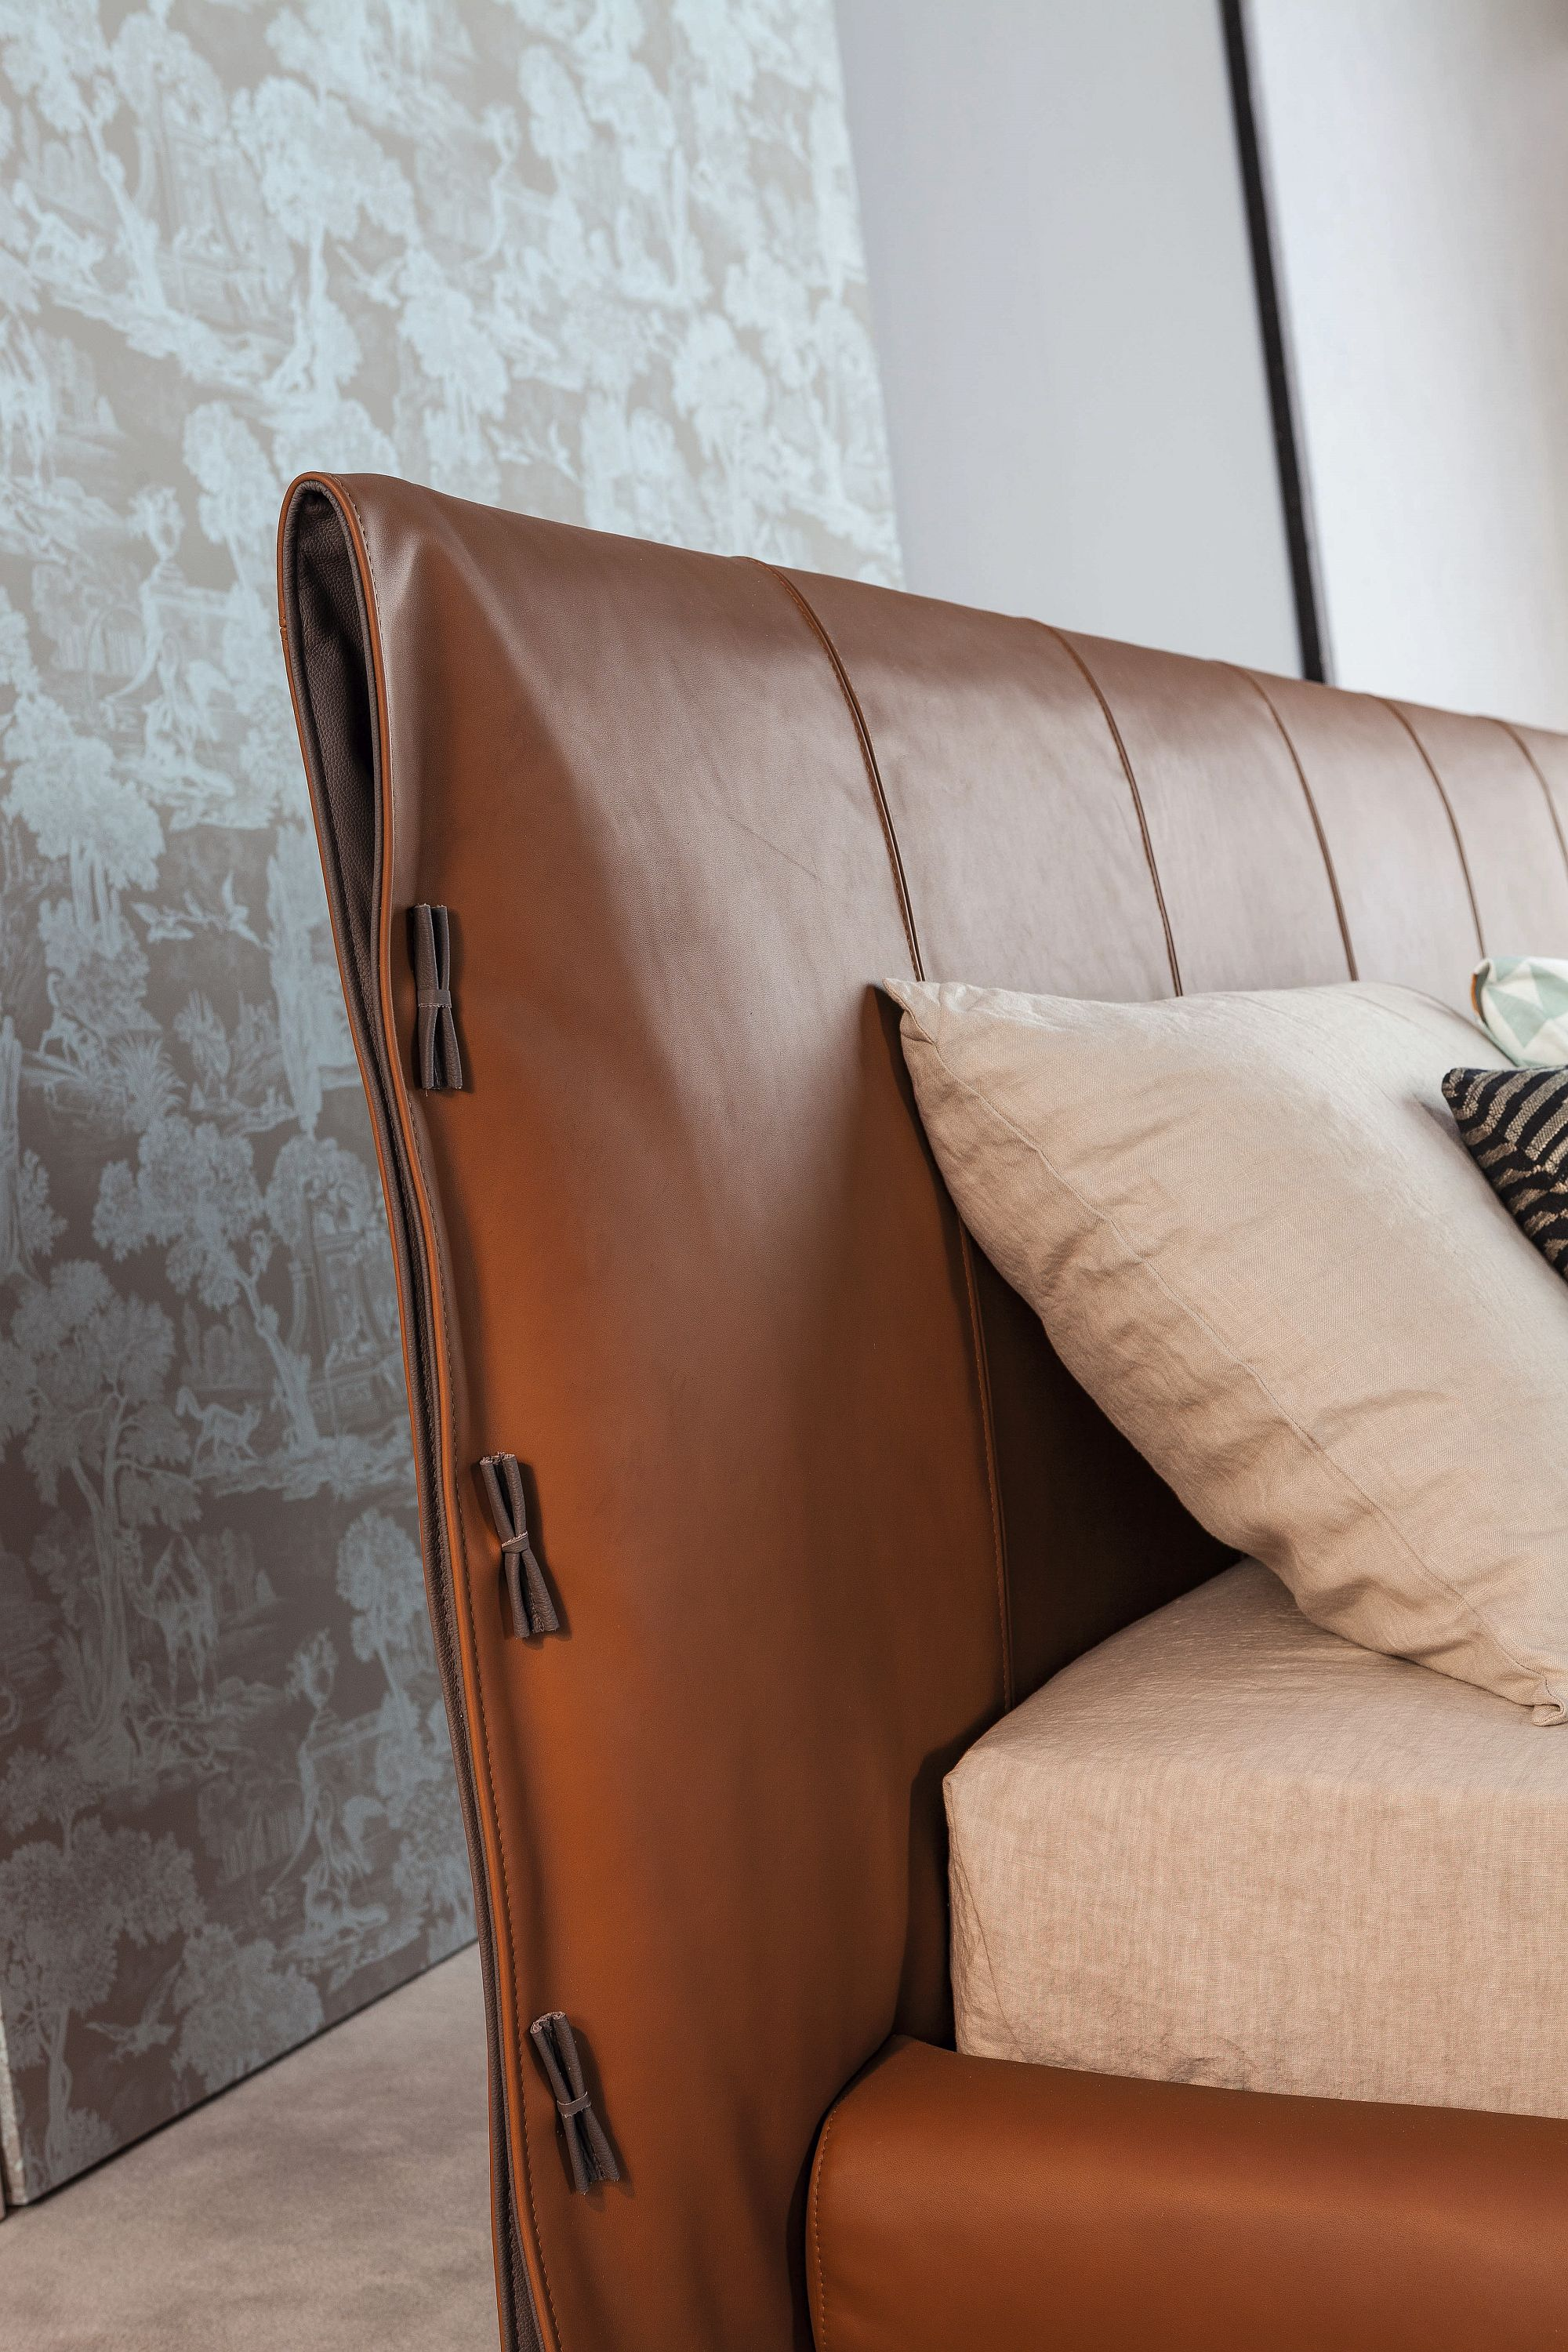 Leather gives the bed a polished, contemporary vibe